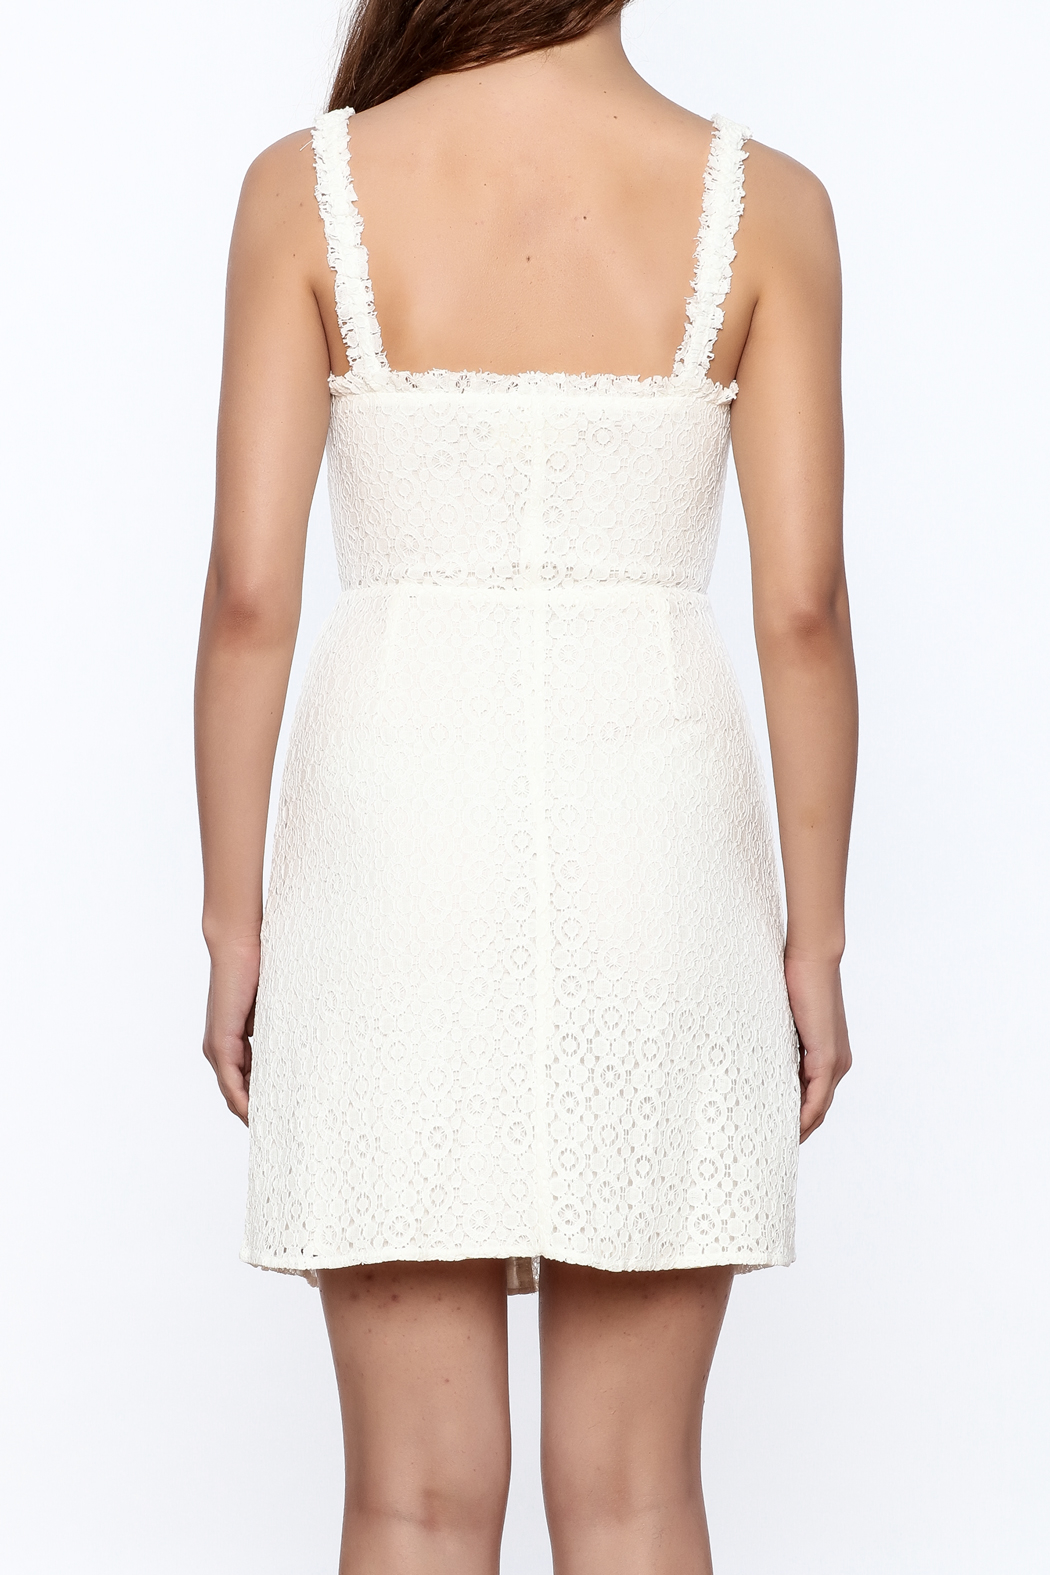 storia Crochet Dress - Back Cropped Image